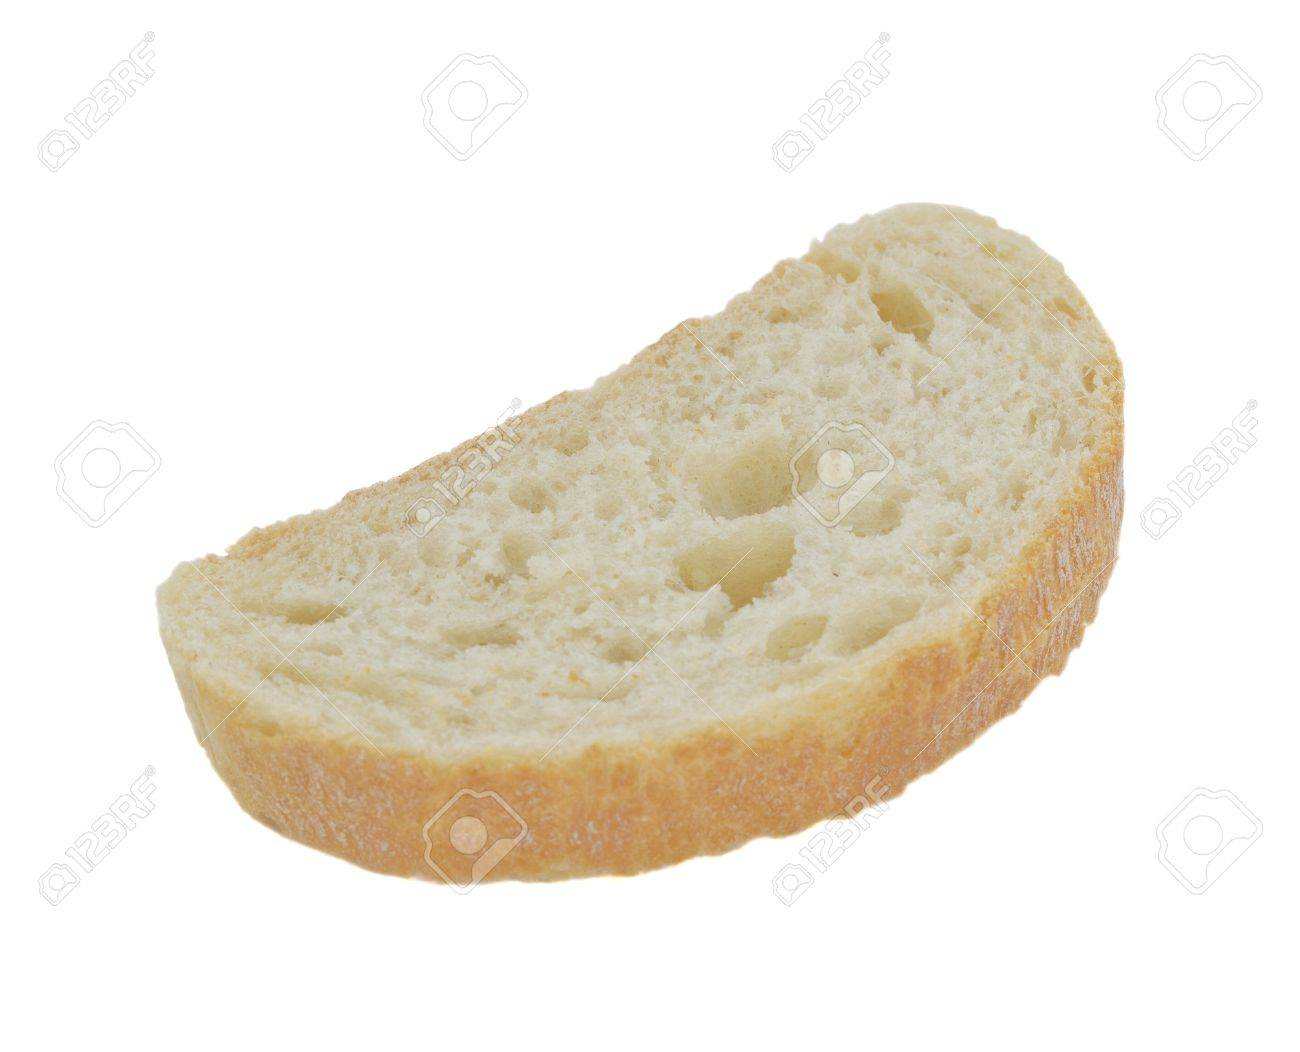 A literal slice of bread